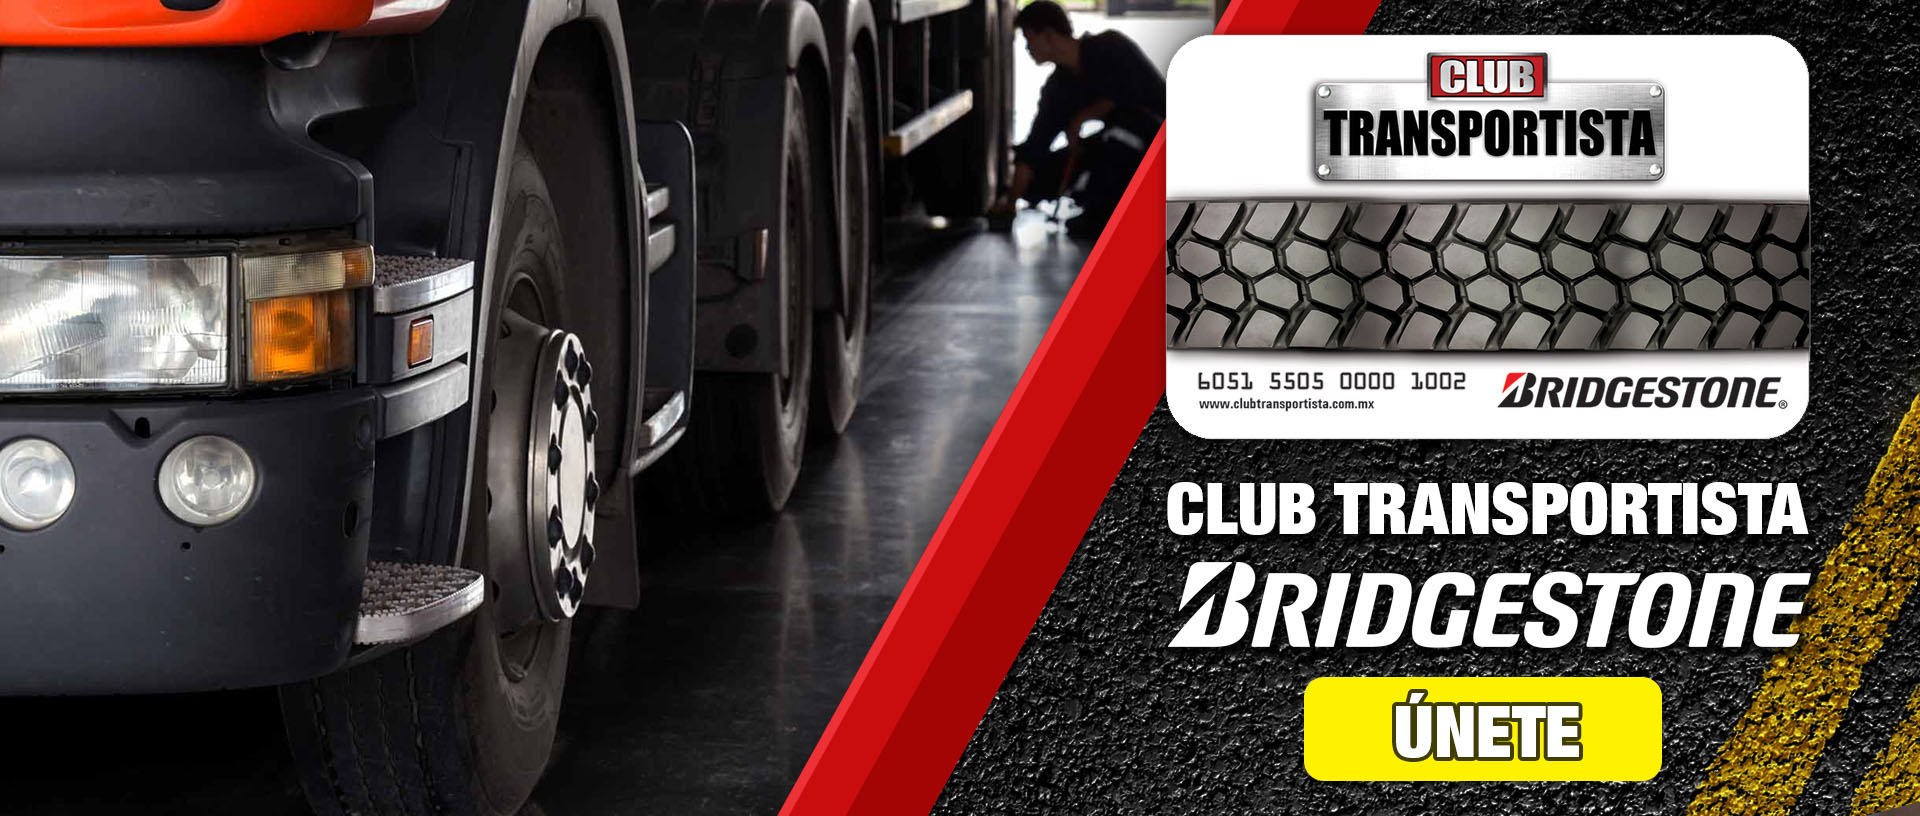 Club Transportista Bridgestone